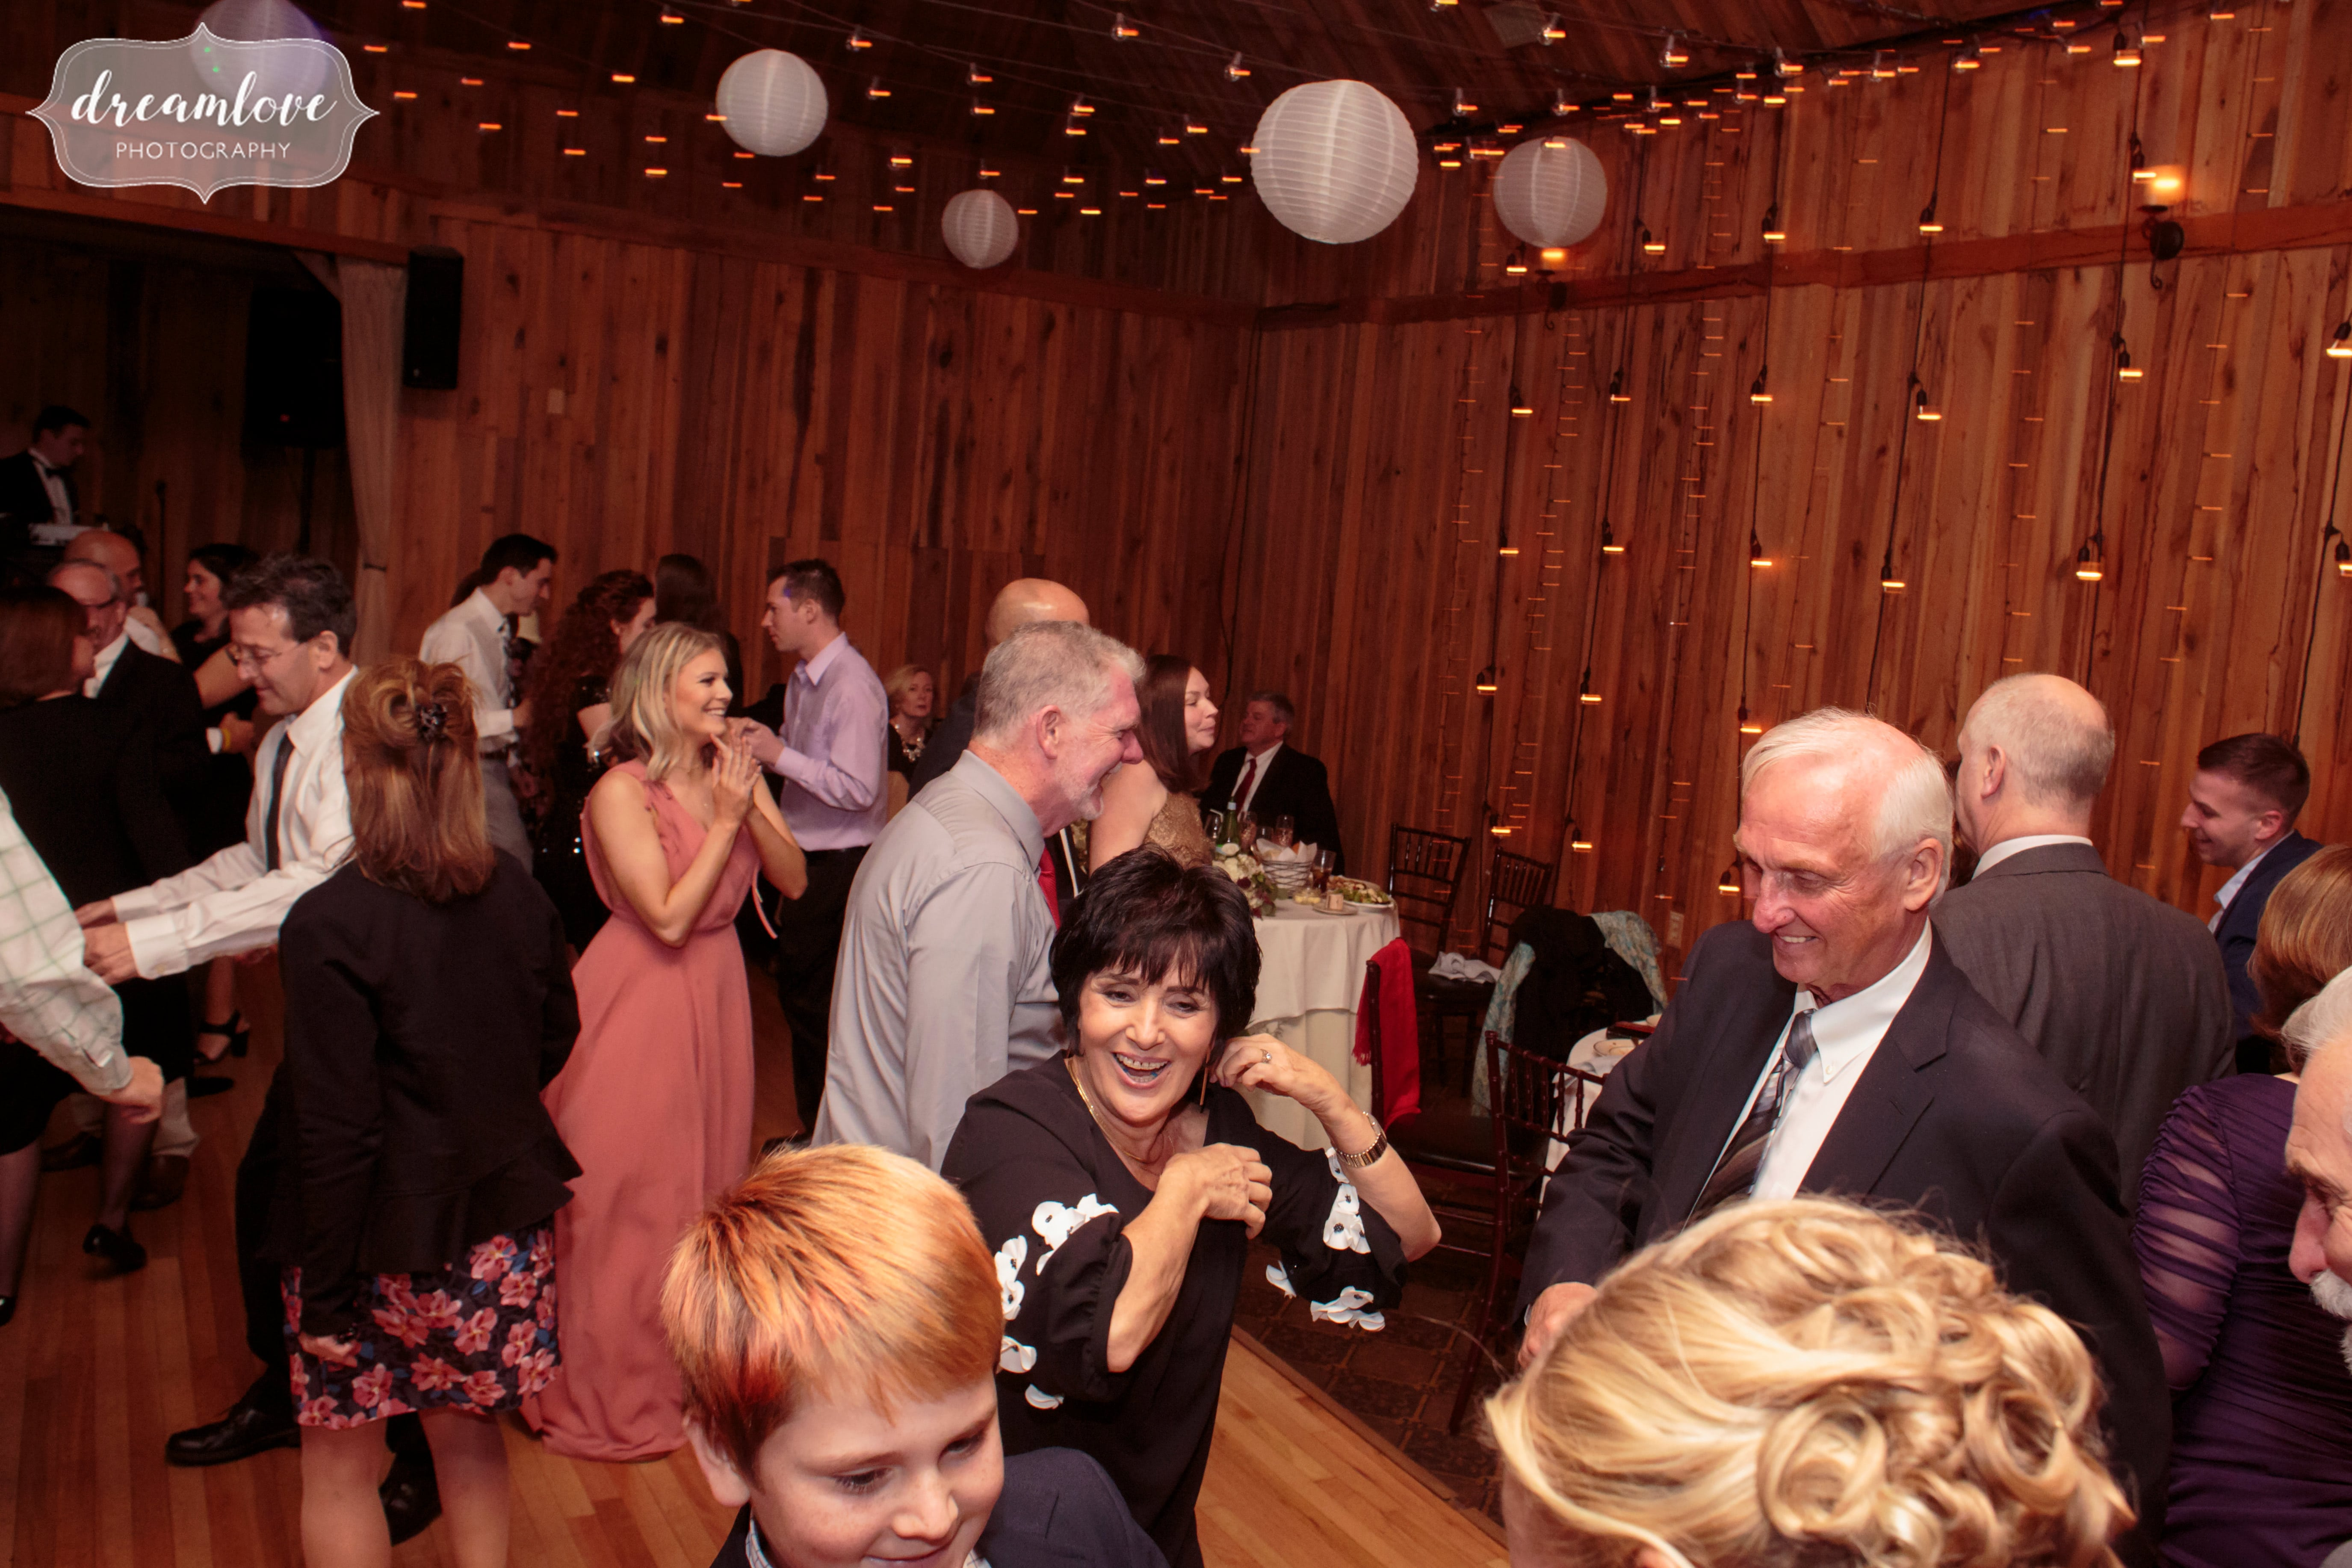 The dance floor at the rustic Crystal Lake Pavilion wedding venue.